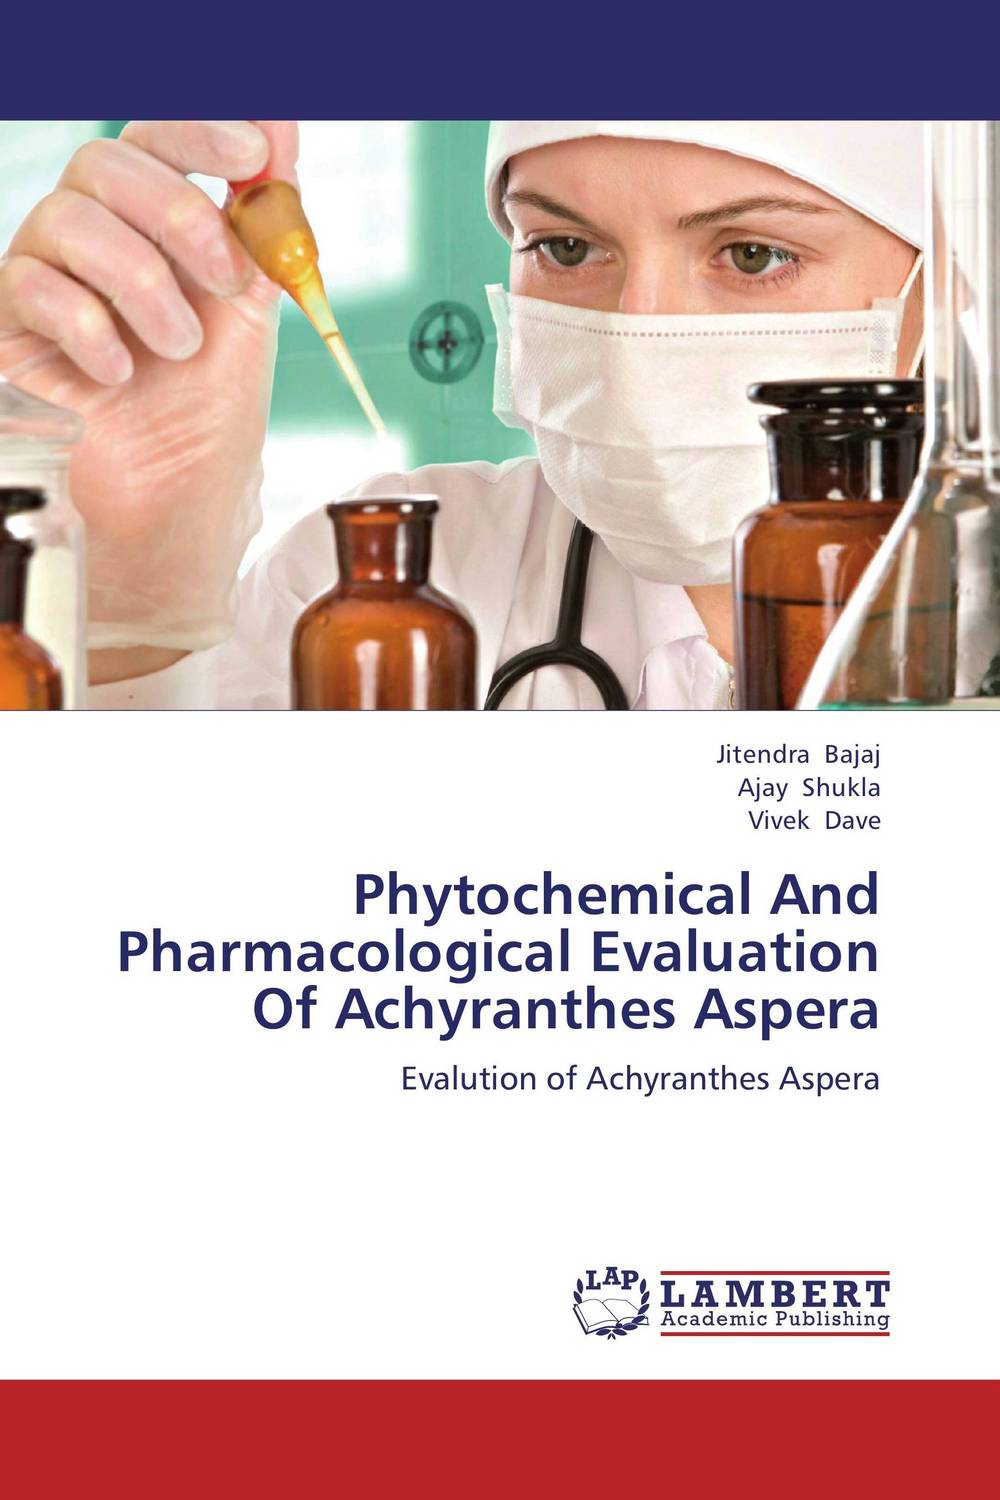 Phytochemical And Pharmacological Evaluation Of Achyranthes Aspera md rabiul islam s m ibrahim sumon and farhana lipi phytochemical evaluation of leaves of cymbopogan citratus